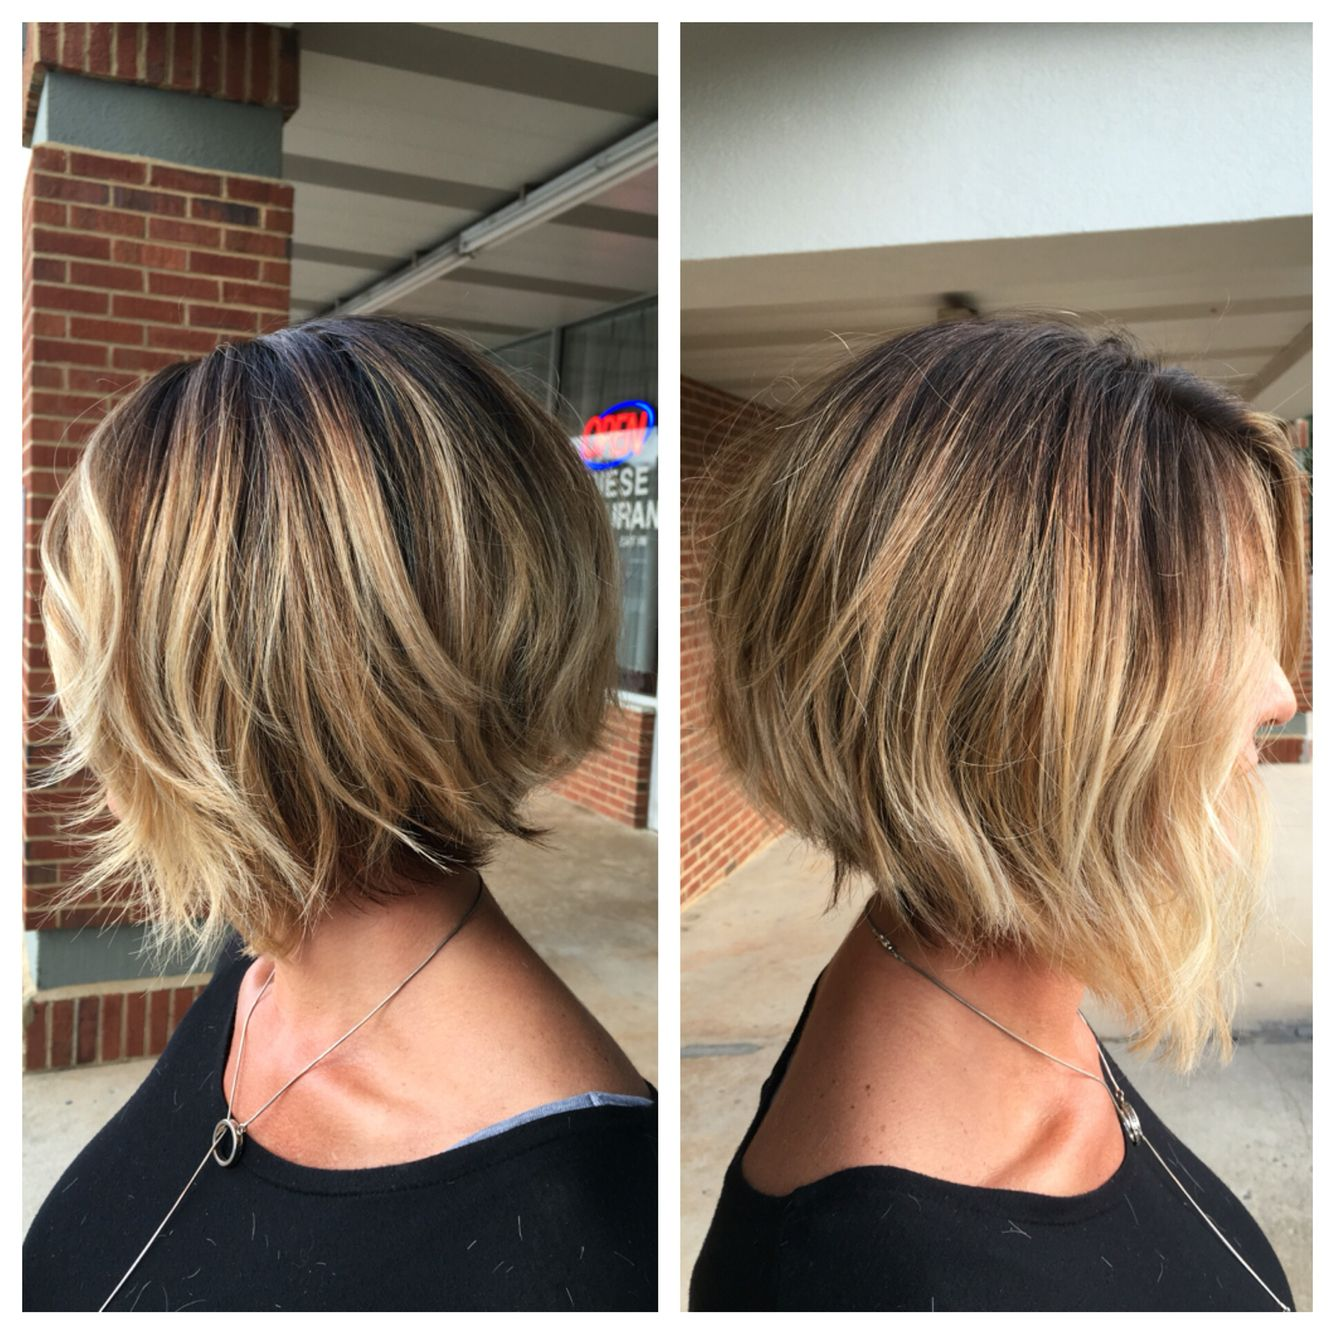 2019 year lifestyle- Appropriate Work stacked bob haircuts